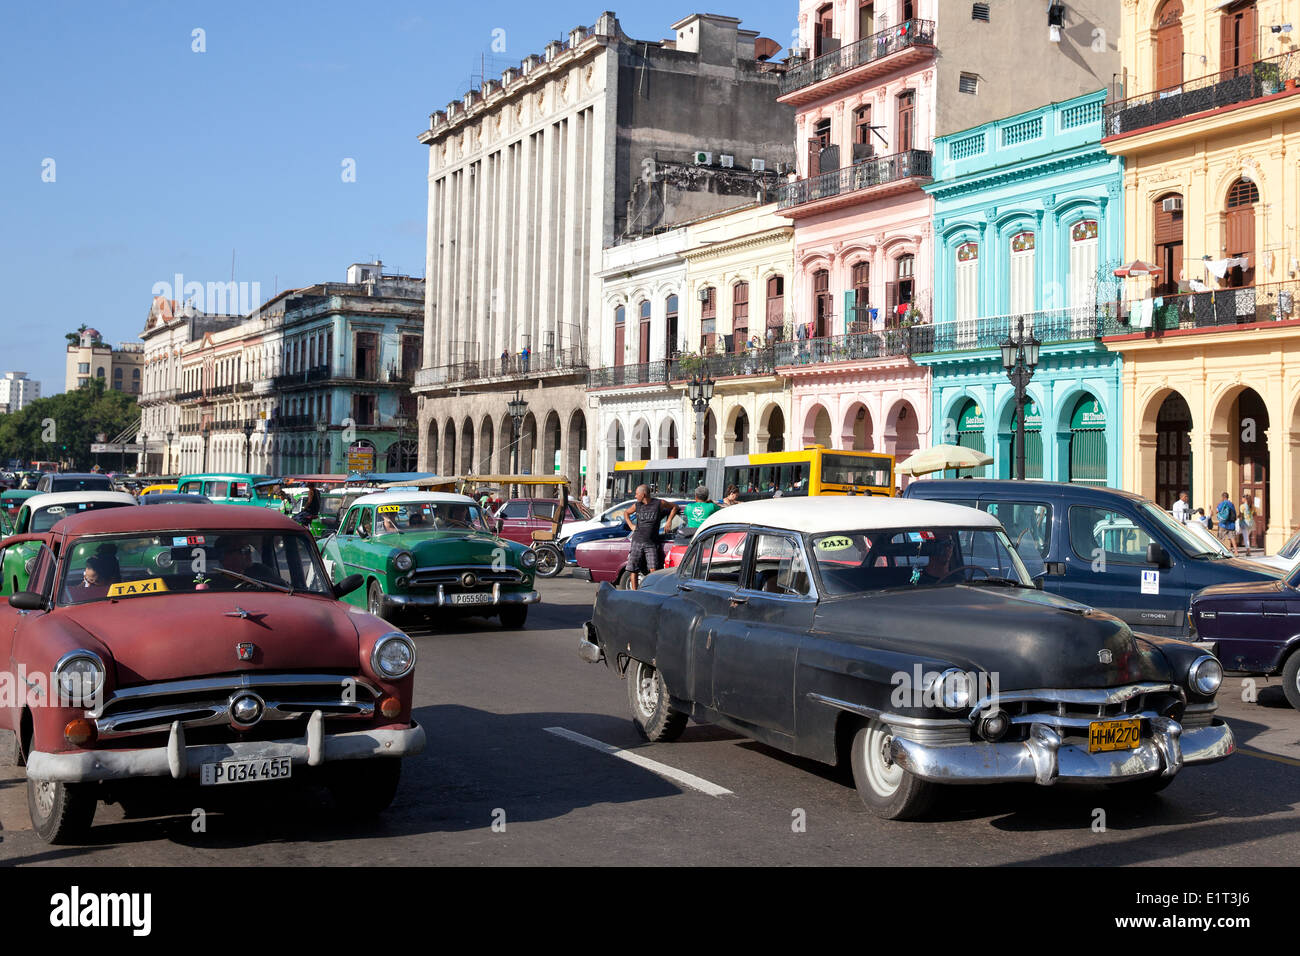 Classic american cars in the streets of Havana, Cuba - Stock Image